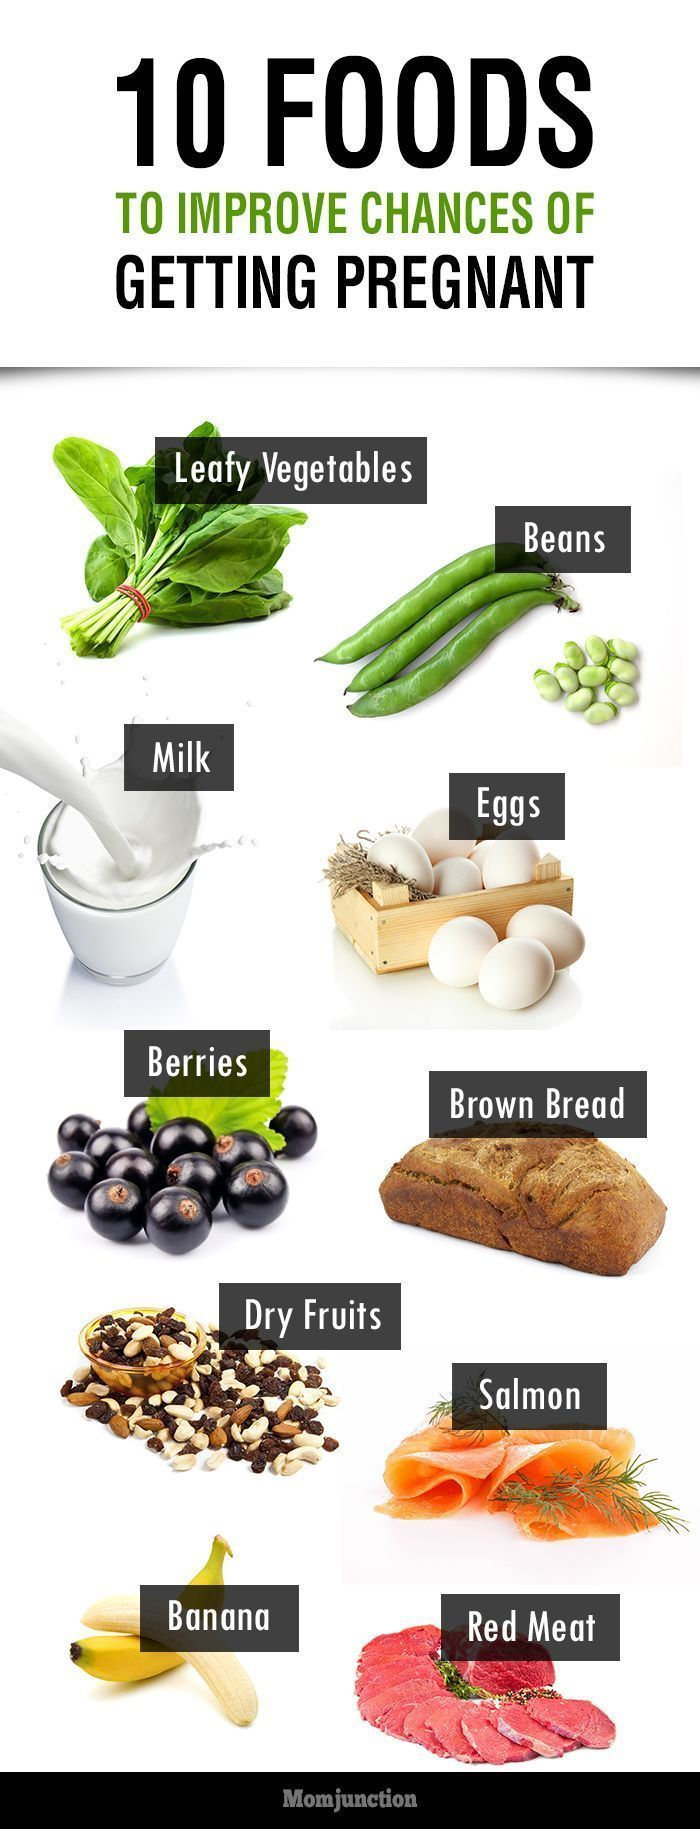 Best Foods To Eat While Trying To Conceive